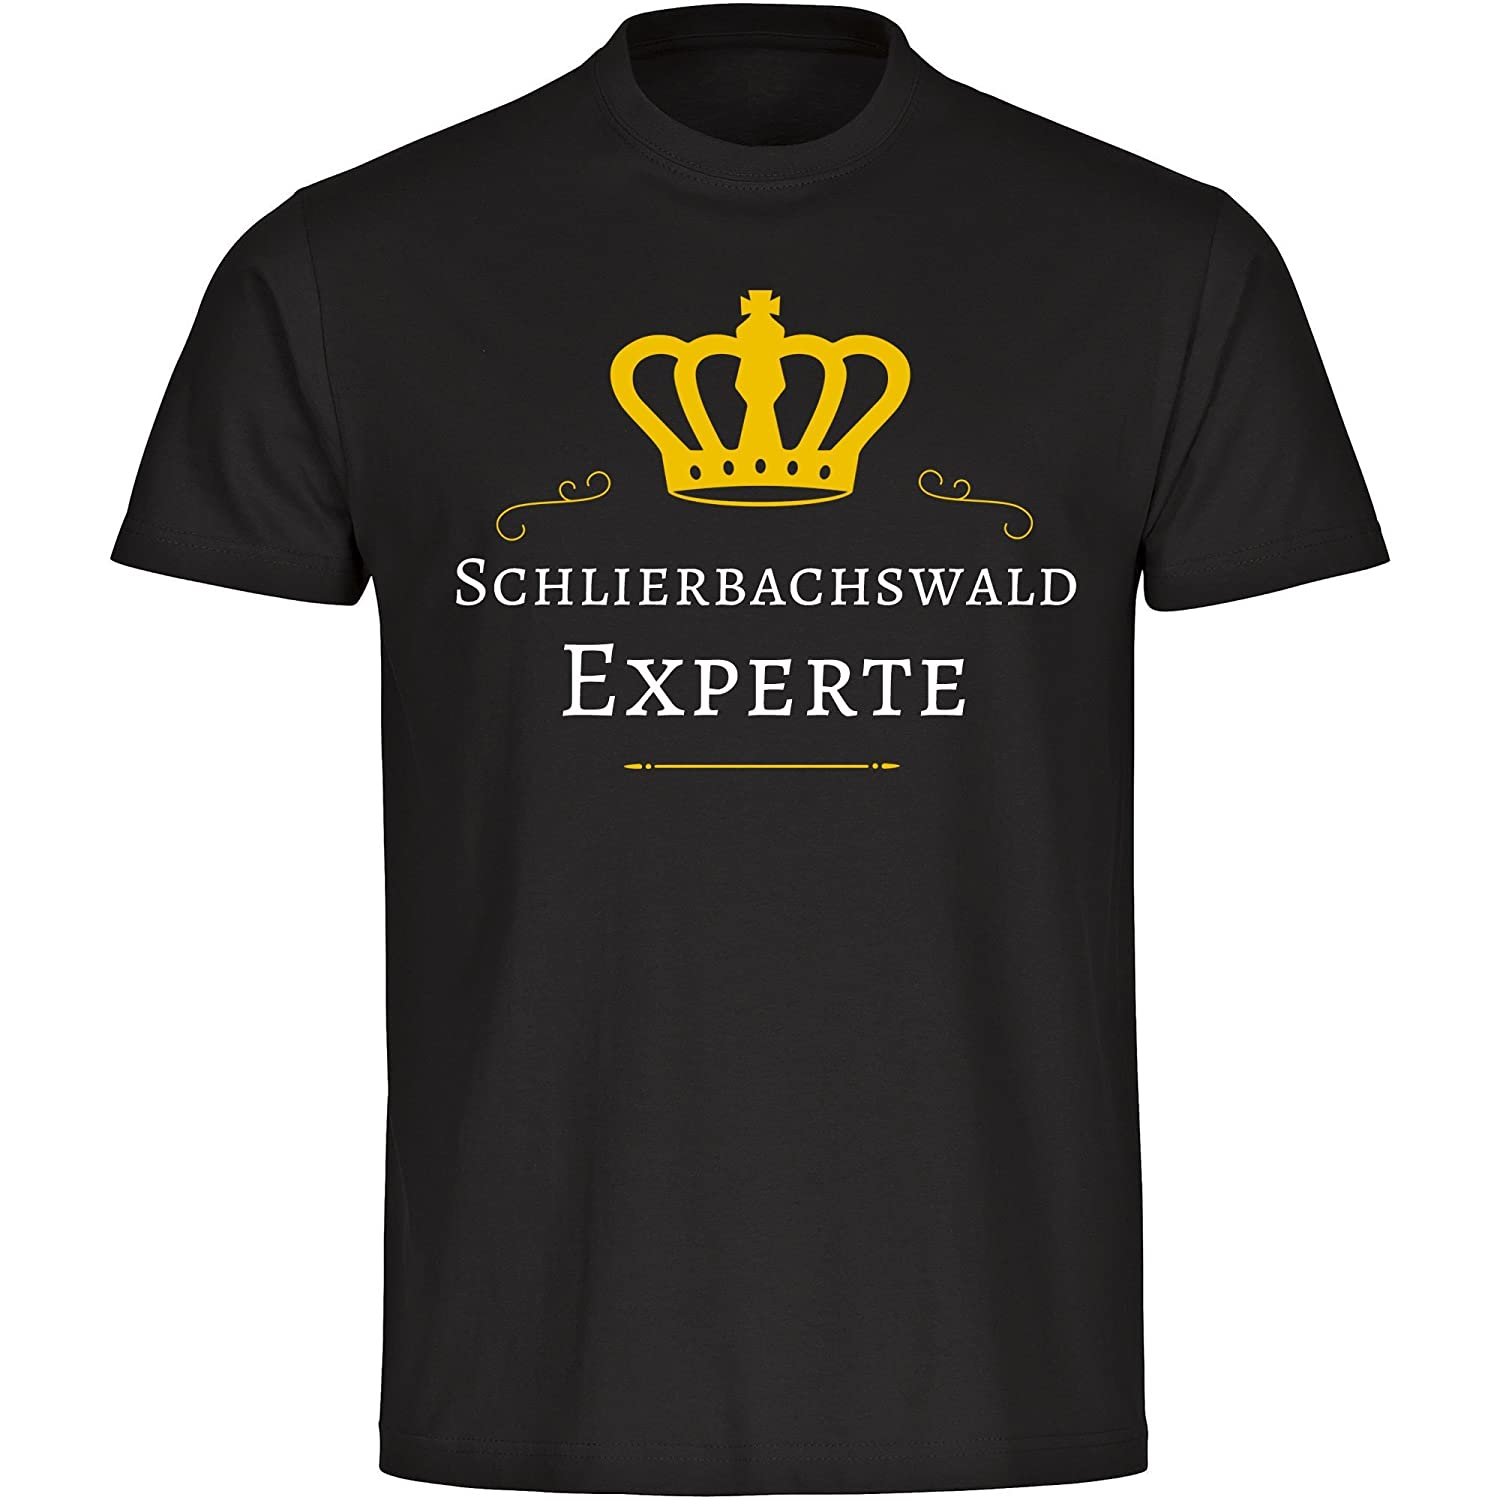 T-Shirt Schliersee Bachs Forest Expert Men's Black Size S to 5XL